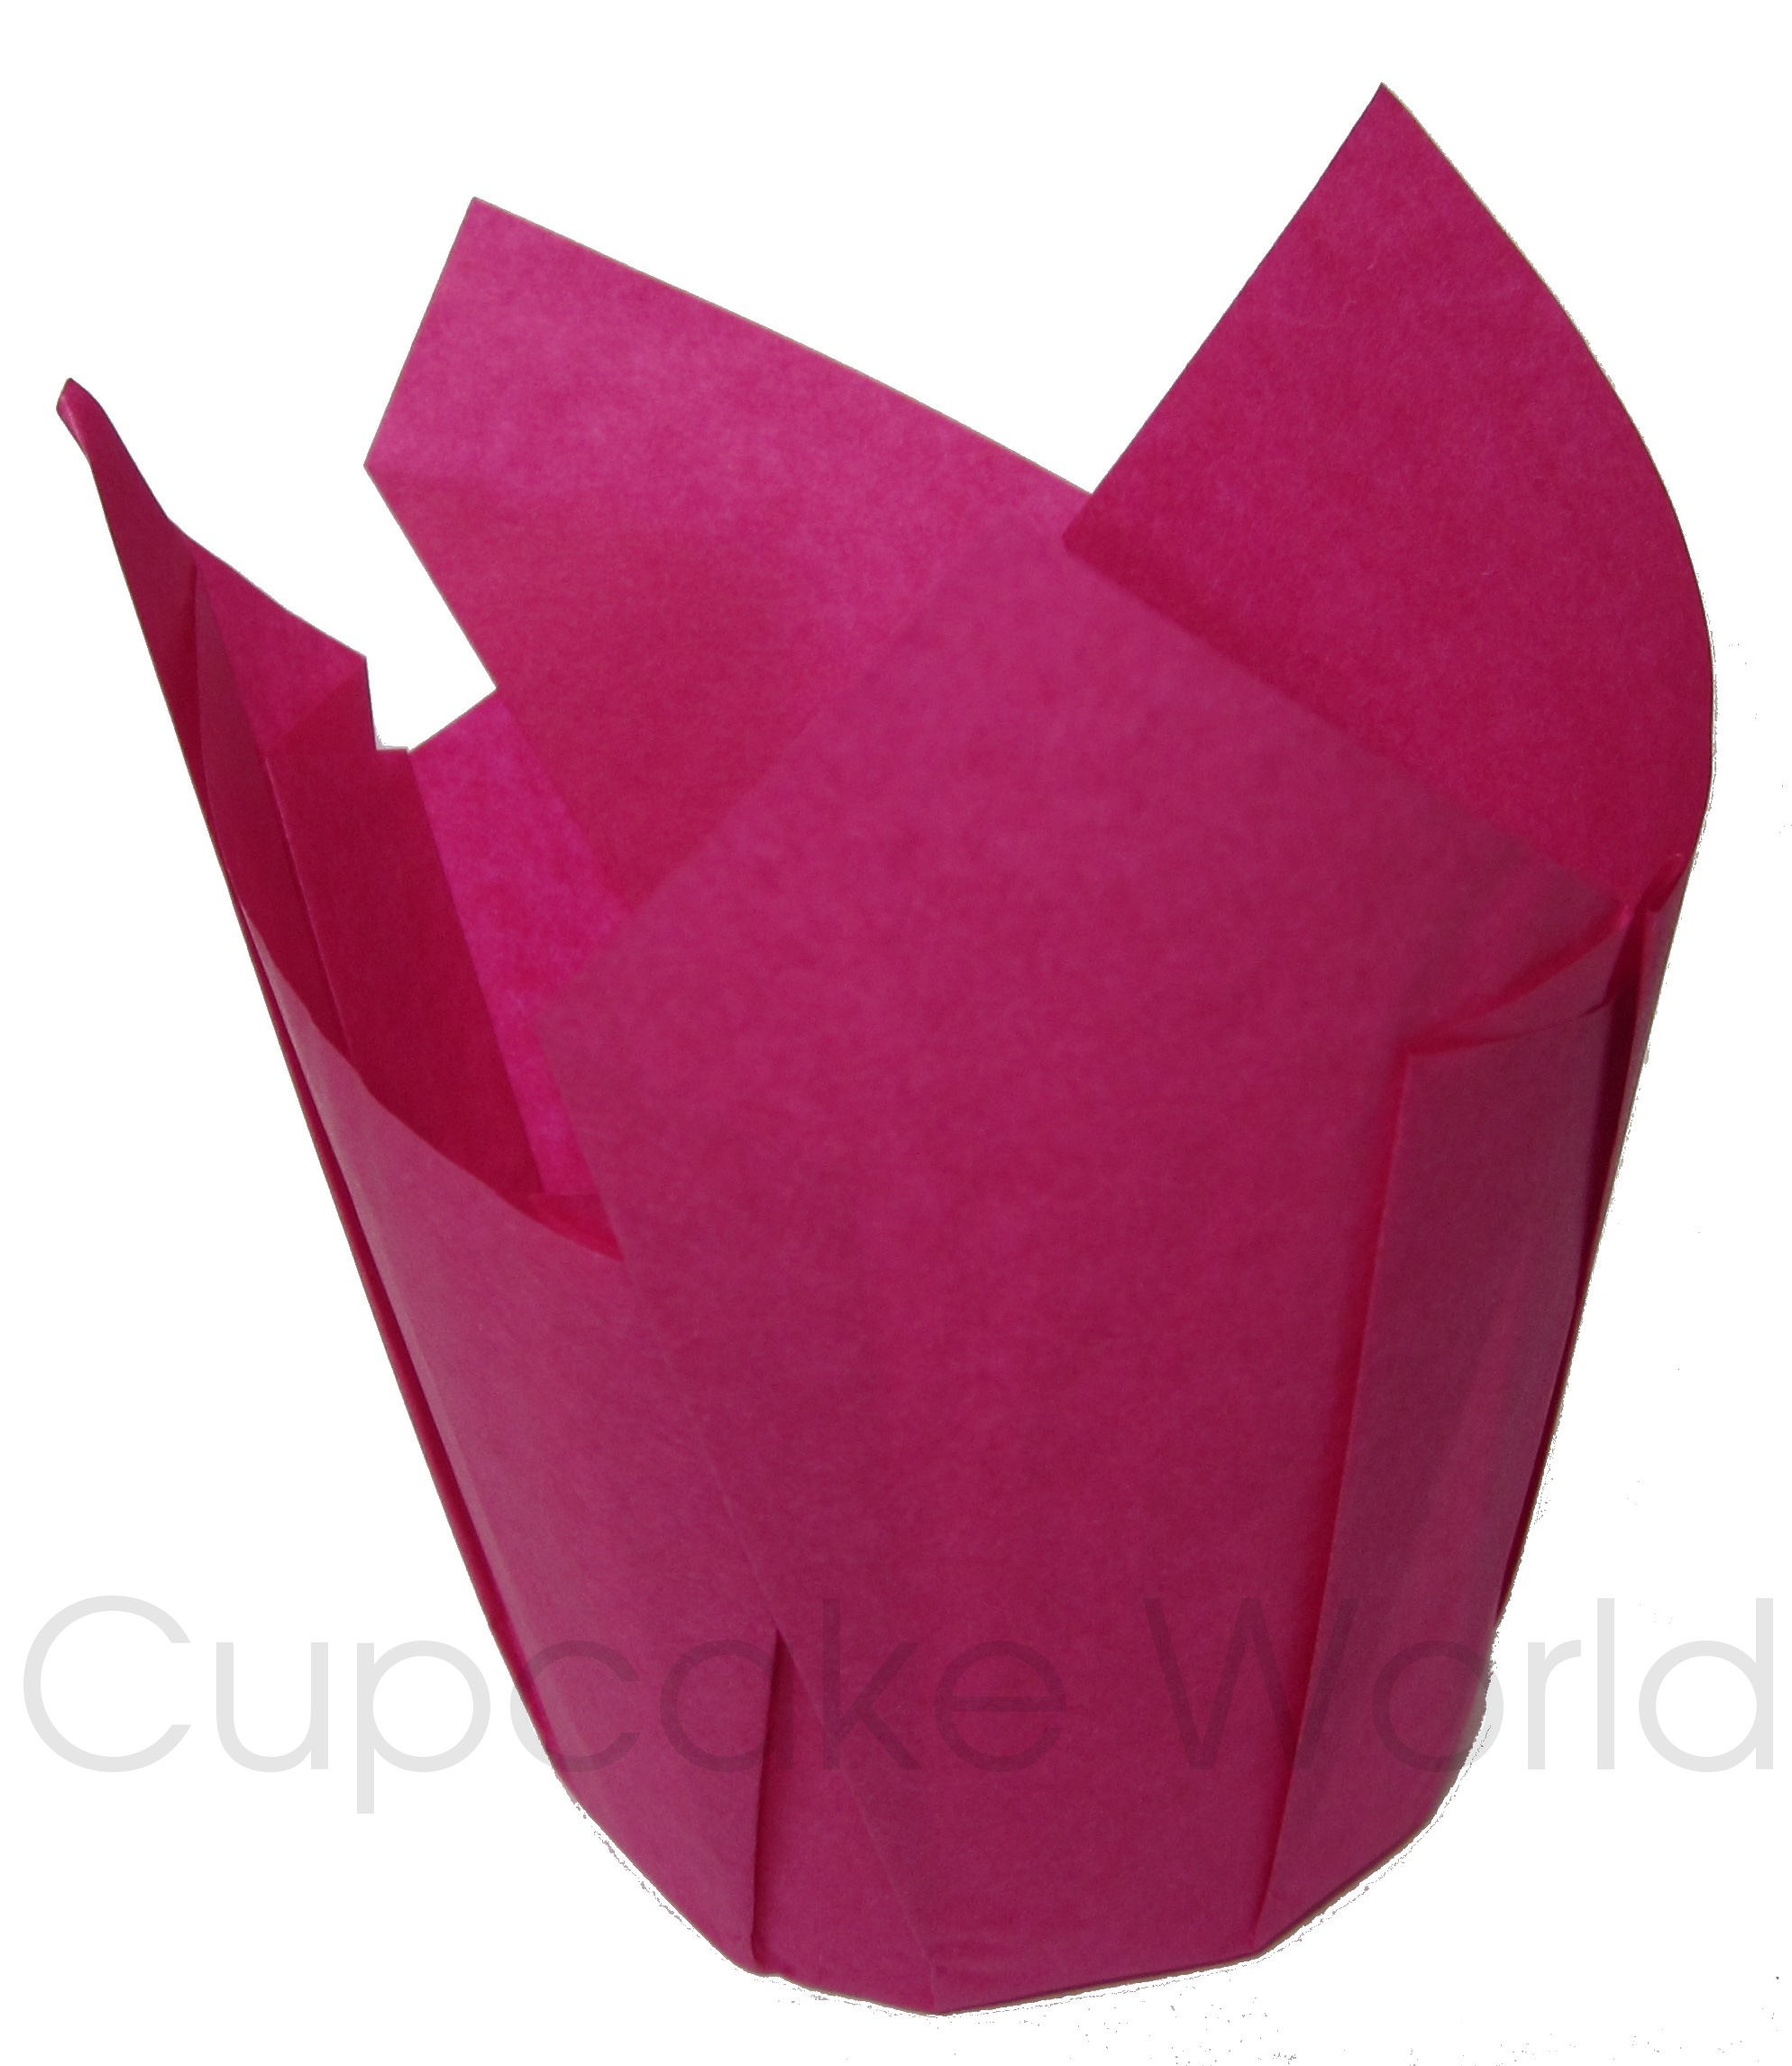 100PC CAFE STYLE HOT PINK PAPER CUPCAKE MUFFIN WRAPS STANDARD